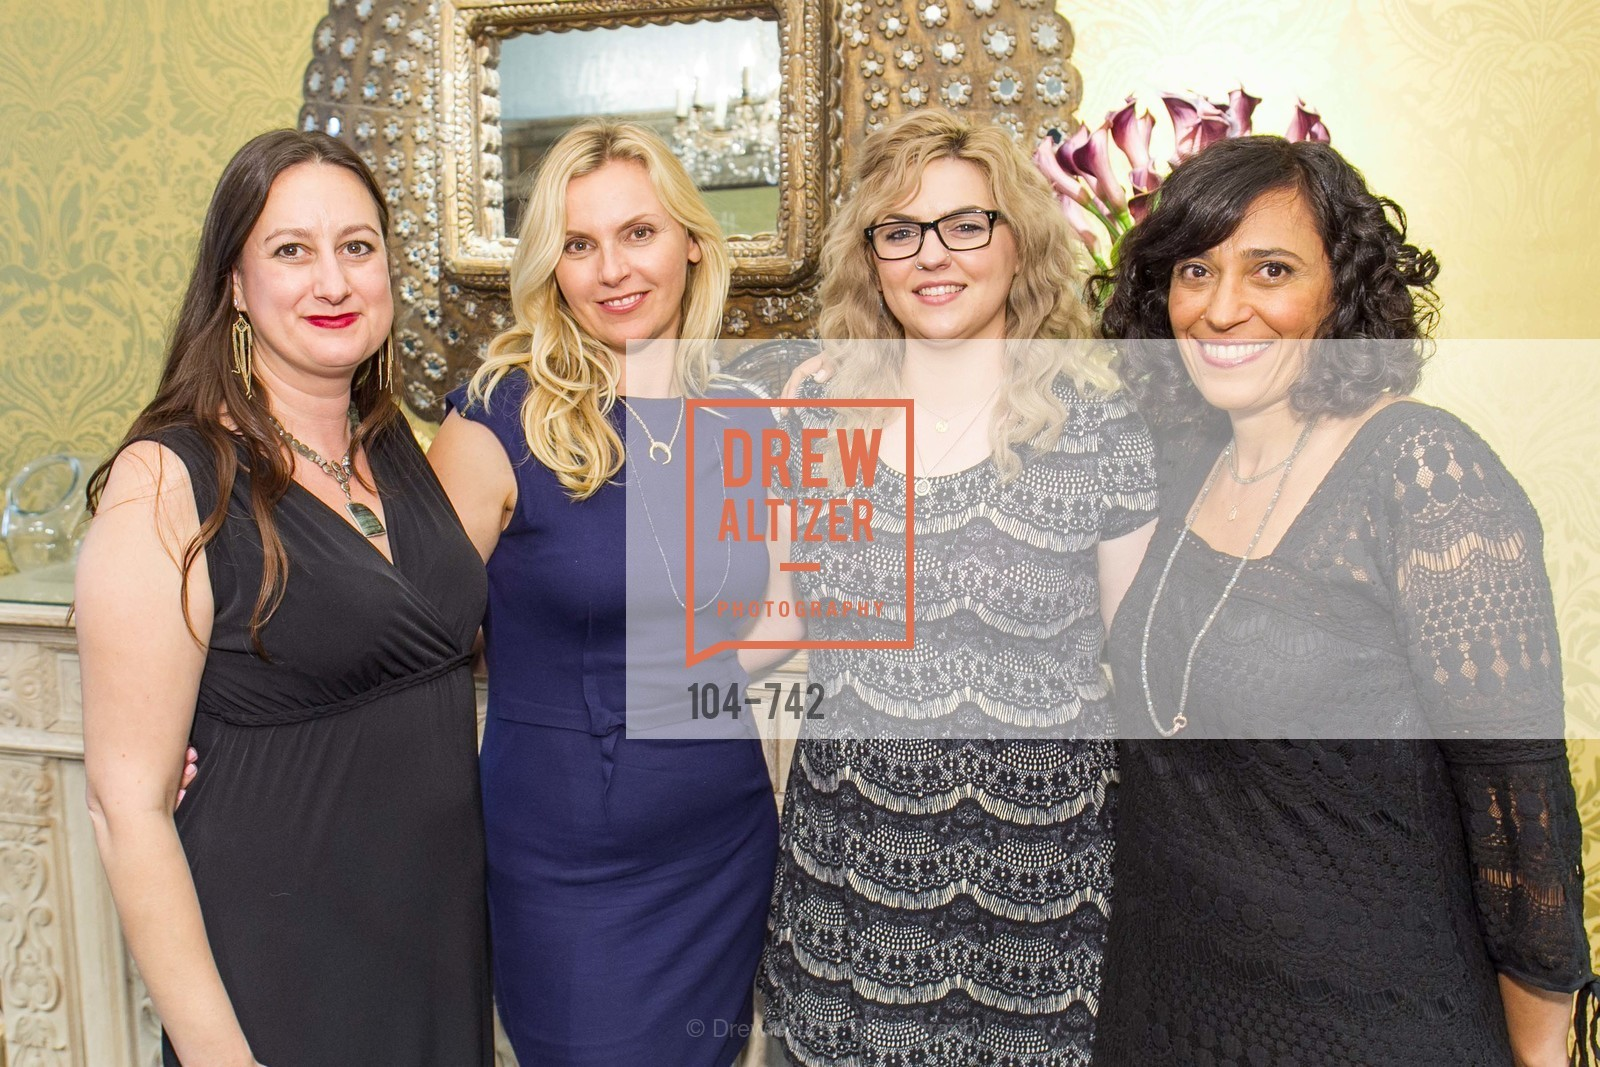 Erica Scott, Alexandra Novak, Brenda Belitskus, Karina Lamhe, LUXETIGERS & GALLERY OF JEWELS Benefit for Dress for Success, US, May 21st, 2015,Drew Altizer, Drew Altizer Photography, full-service agency, private events, San Francisco photographer, photographer california